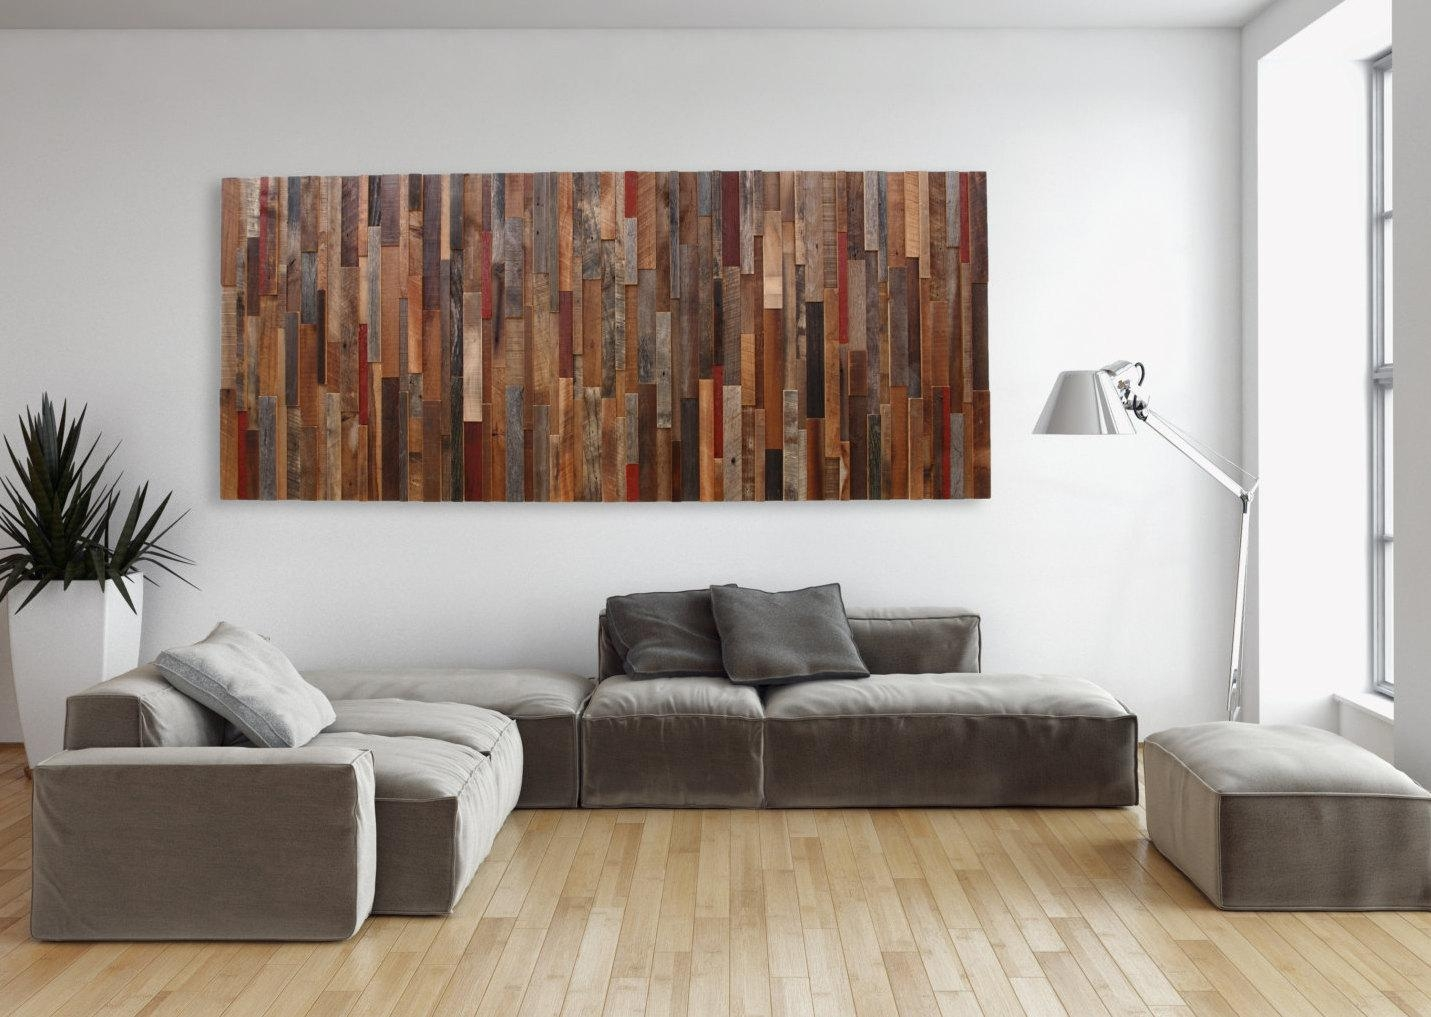 Big Wall Art Decor Design Ideas Modern Photo And Big Wall Art Regarding Big Wall Art (Image 8 of 20)